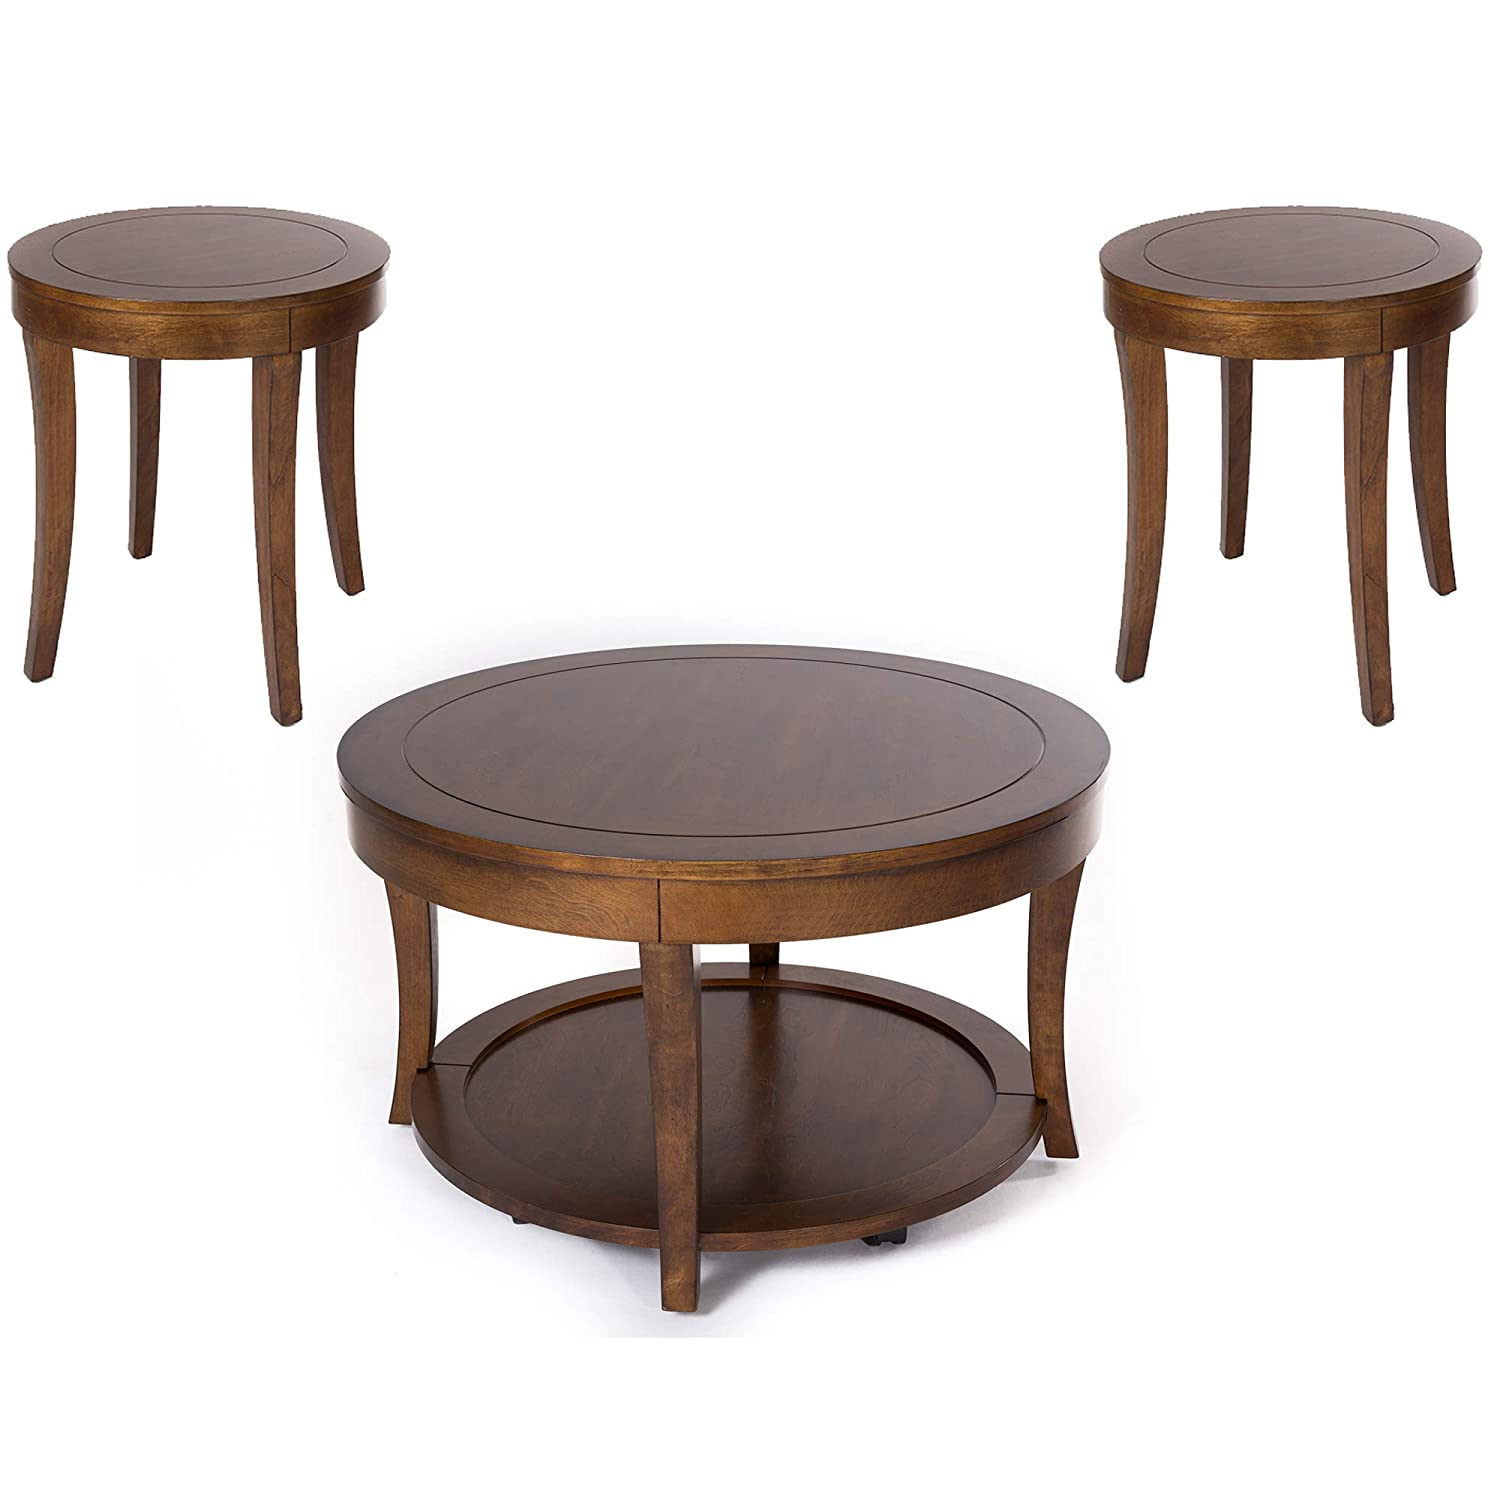 Liberty Furniture Industries Casual Living Occasional 3-Pack Tables, W32 x D32 x H19, Cherry